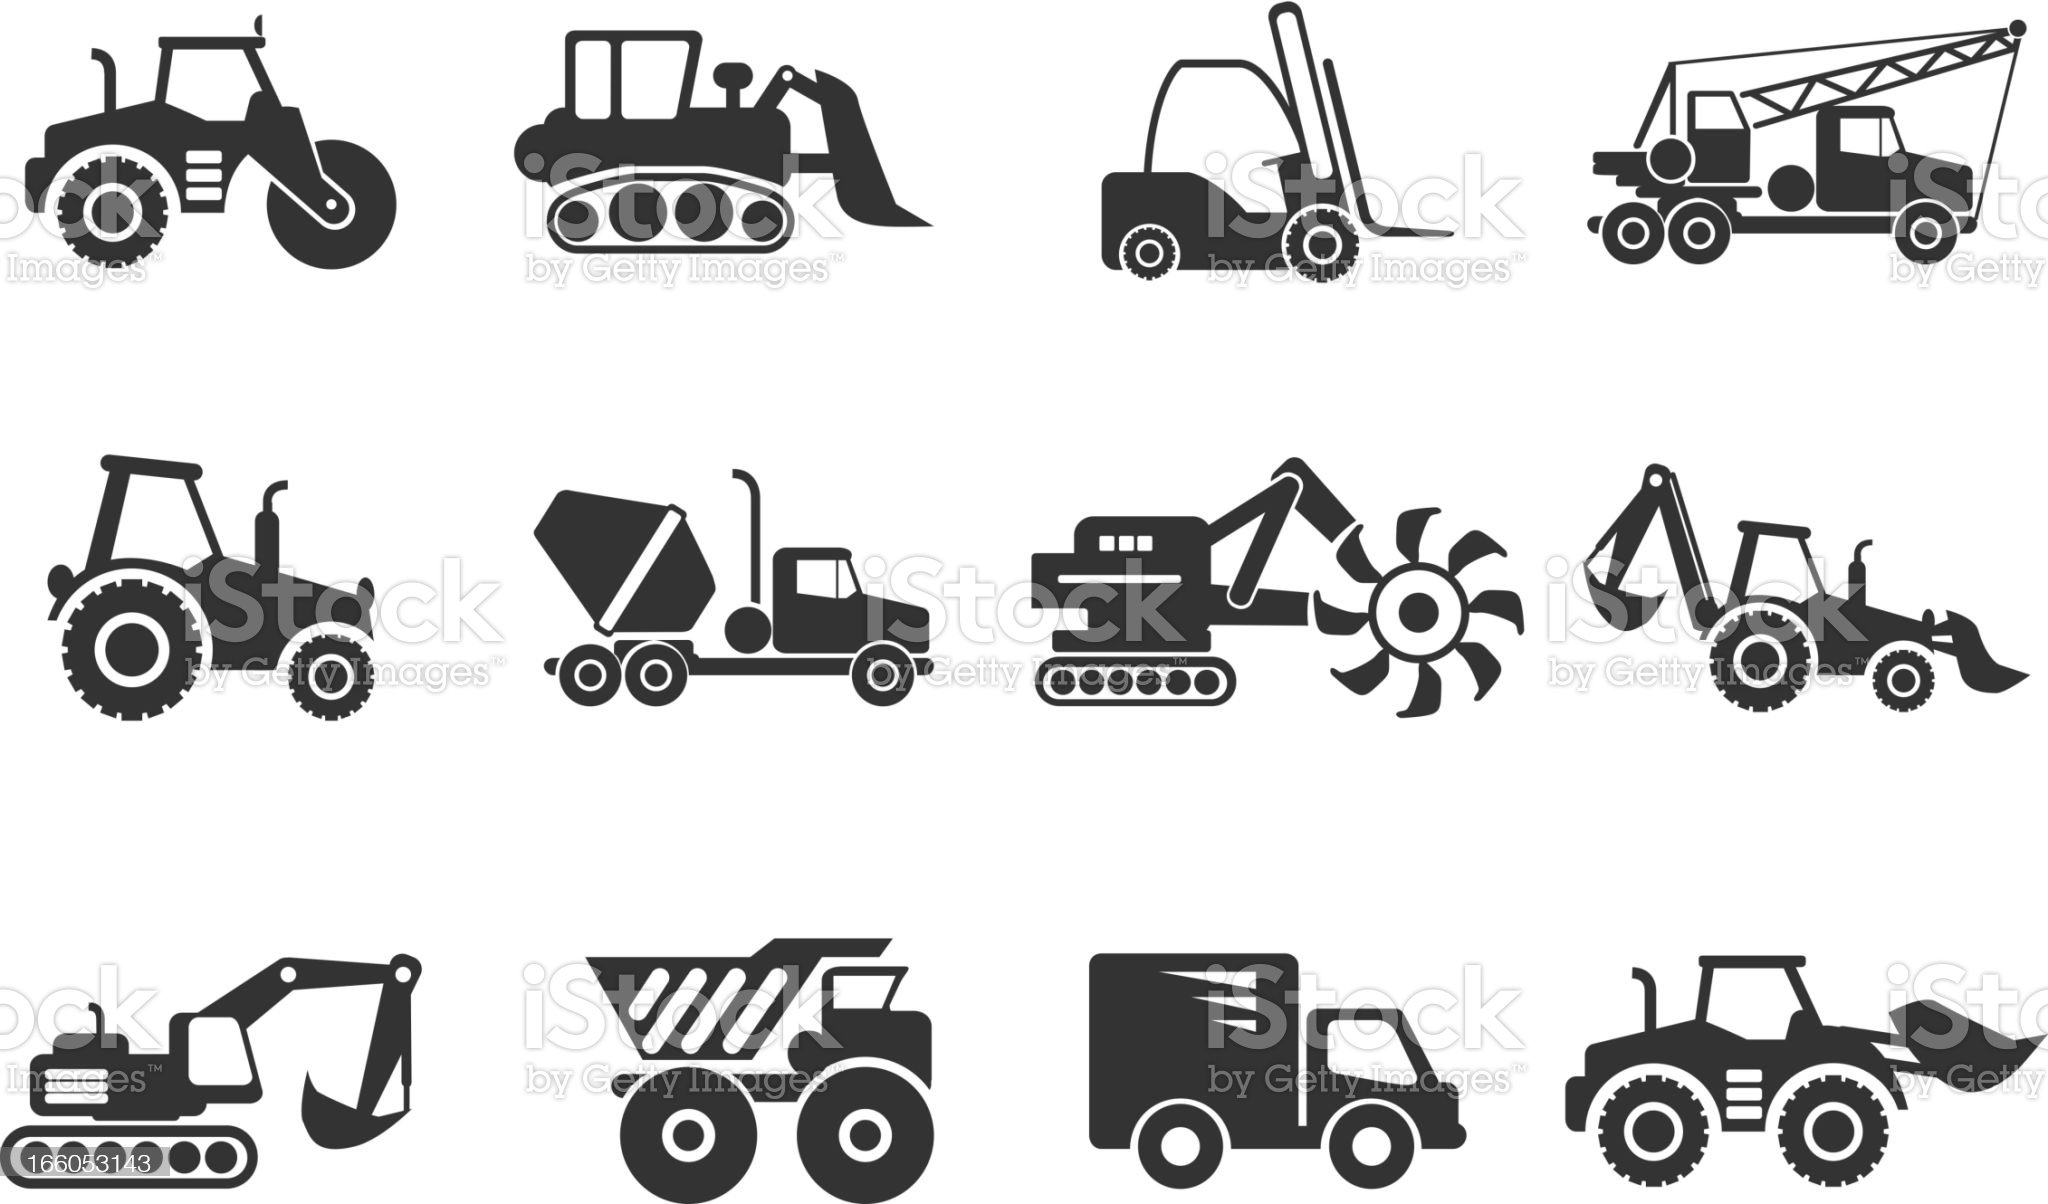 A set of vector graphics to represent construction vehicles royalty-free stock vector art